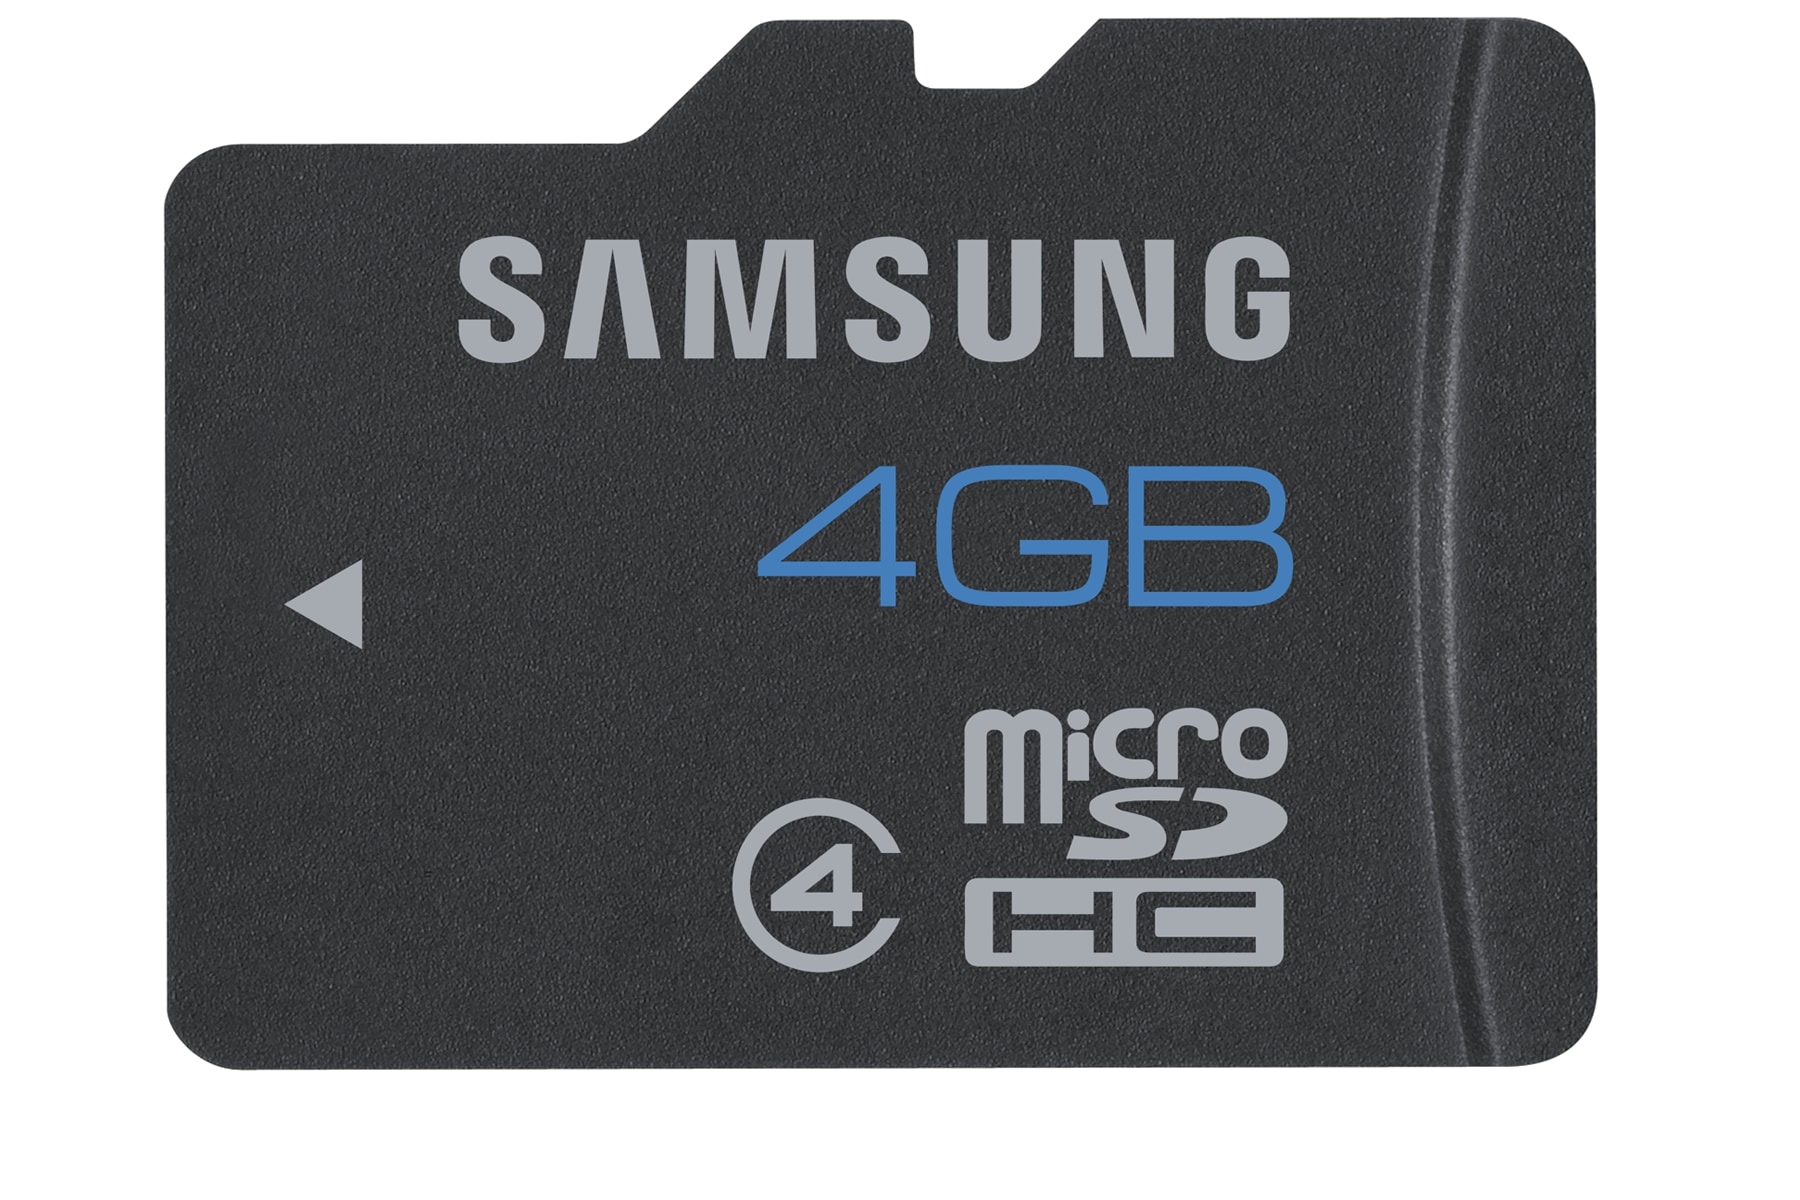 Samsung 4gb Micro Sd Class 4 Mobile Phone & Tablet Memory Card